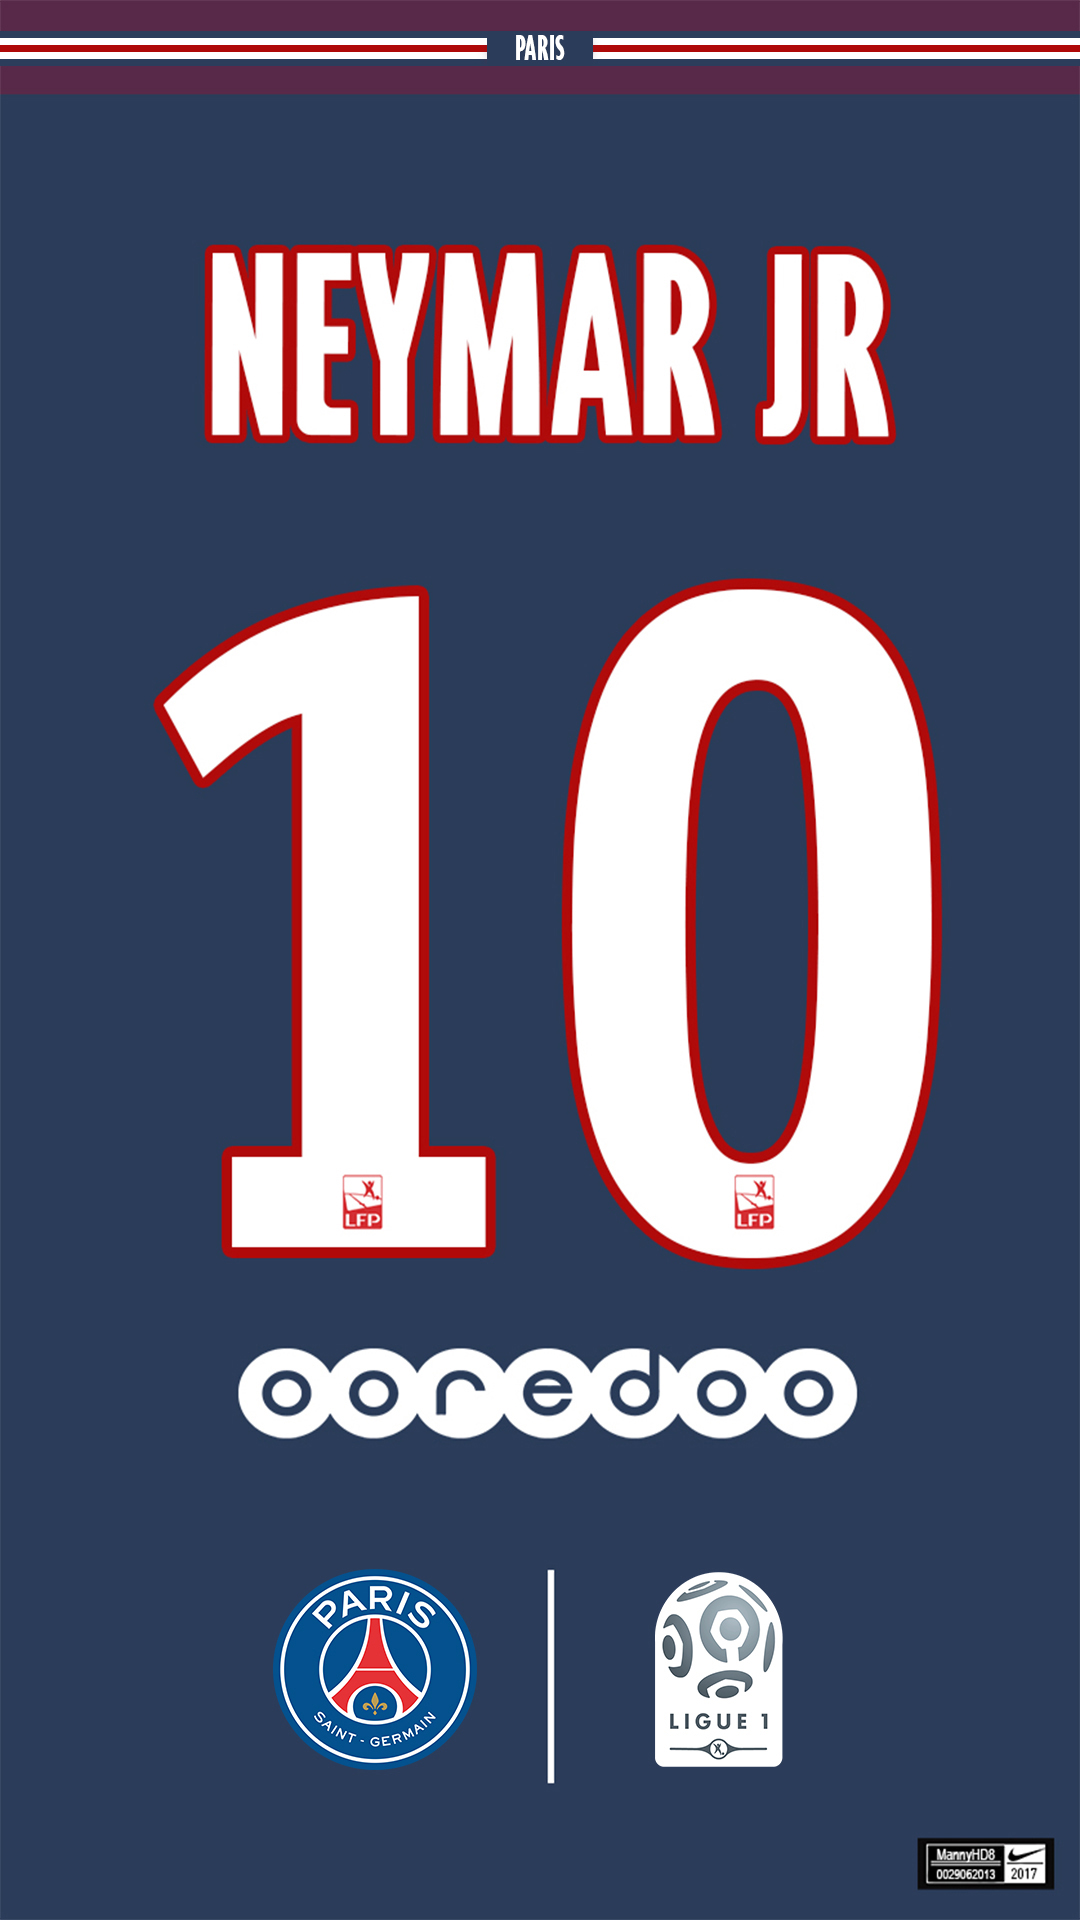 Paris Saint Germain Kit Neymar Jr 1080x1920 By Mannyhd29 On Deviantart